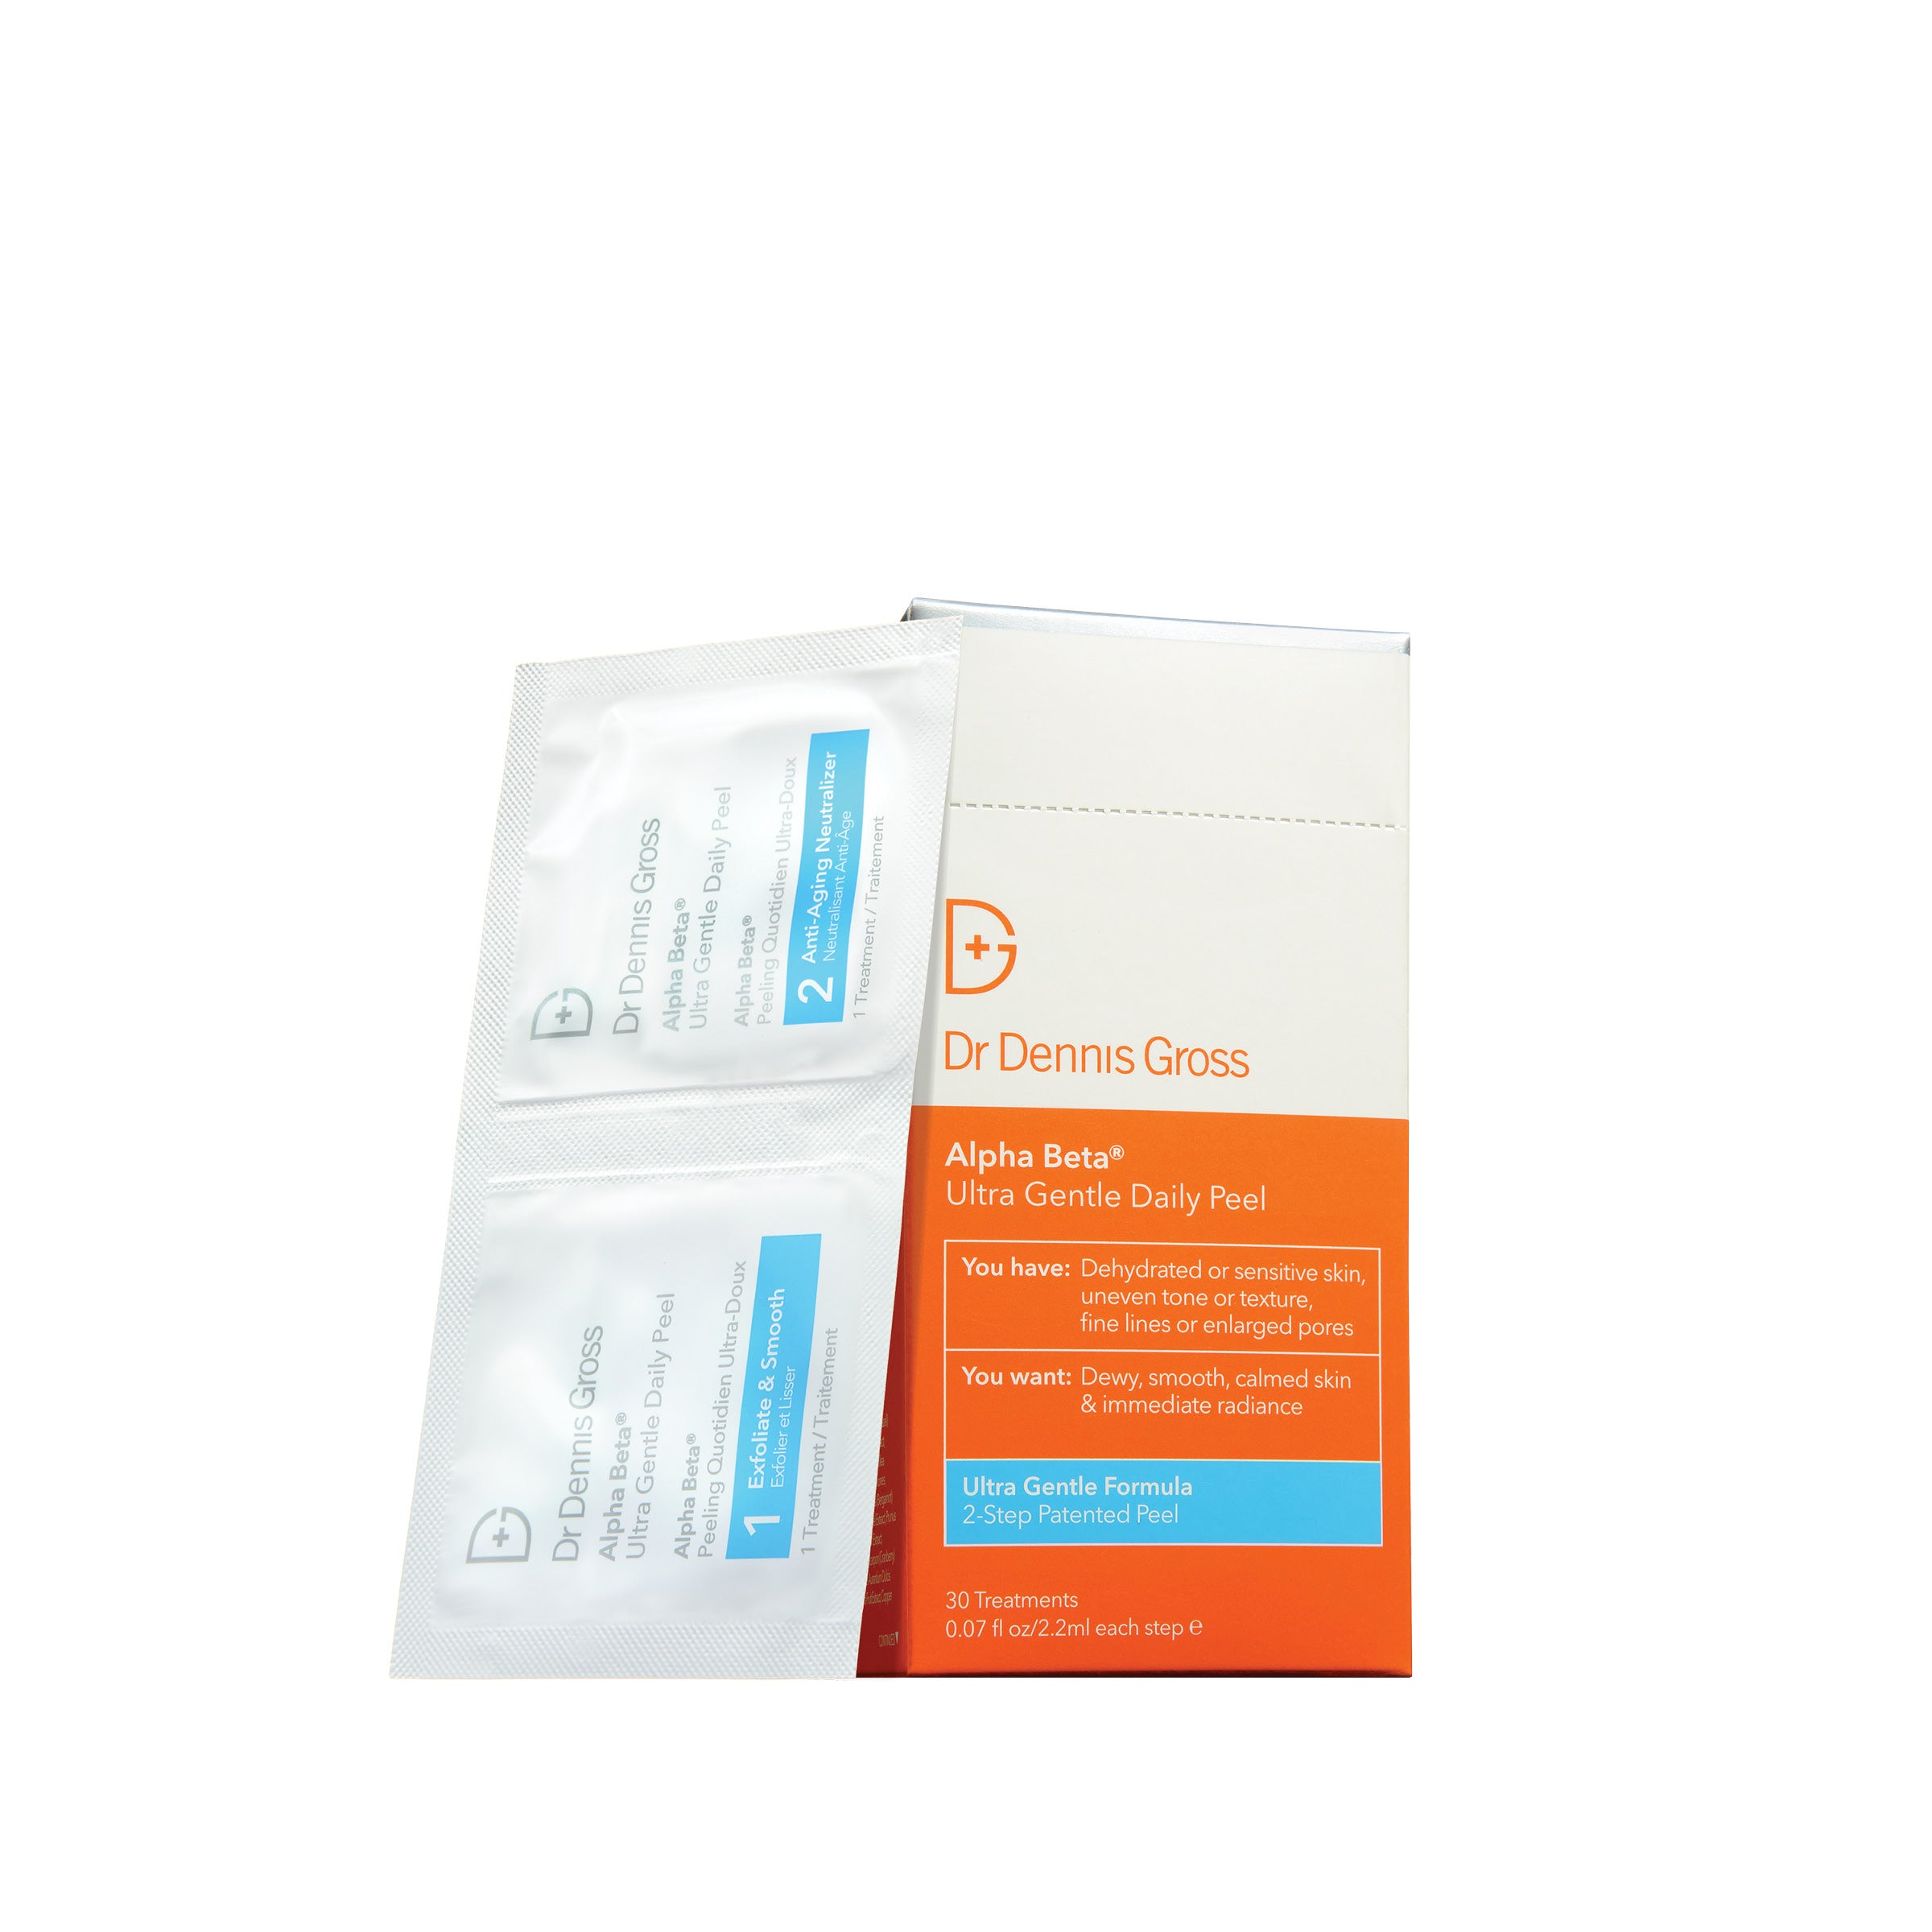 Dr Dennis Gross Alpha Beta Ultra Gentle Daily Peel - 30 Applications